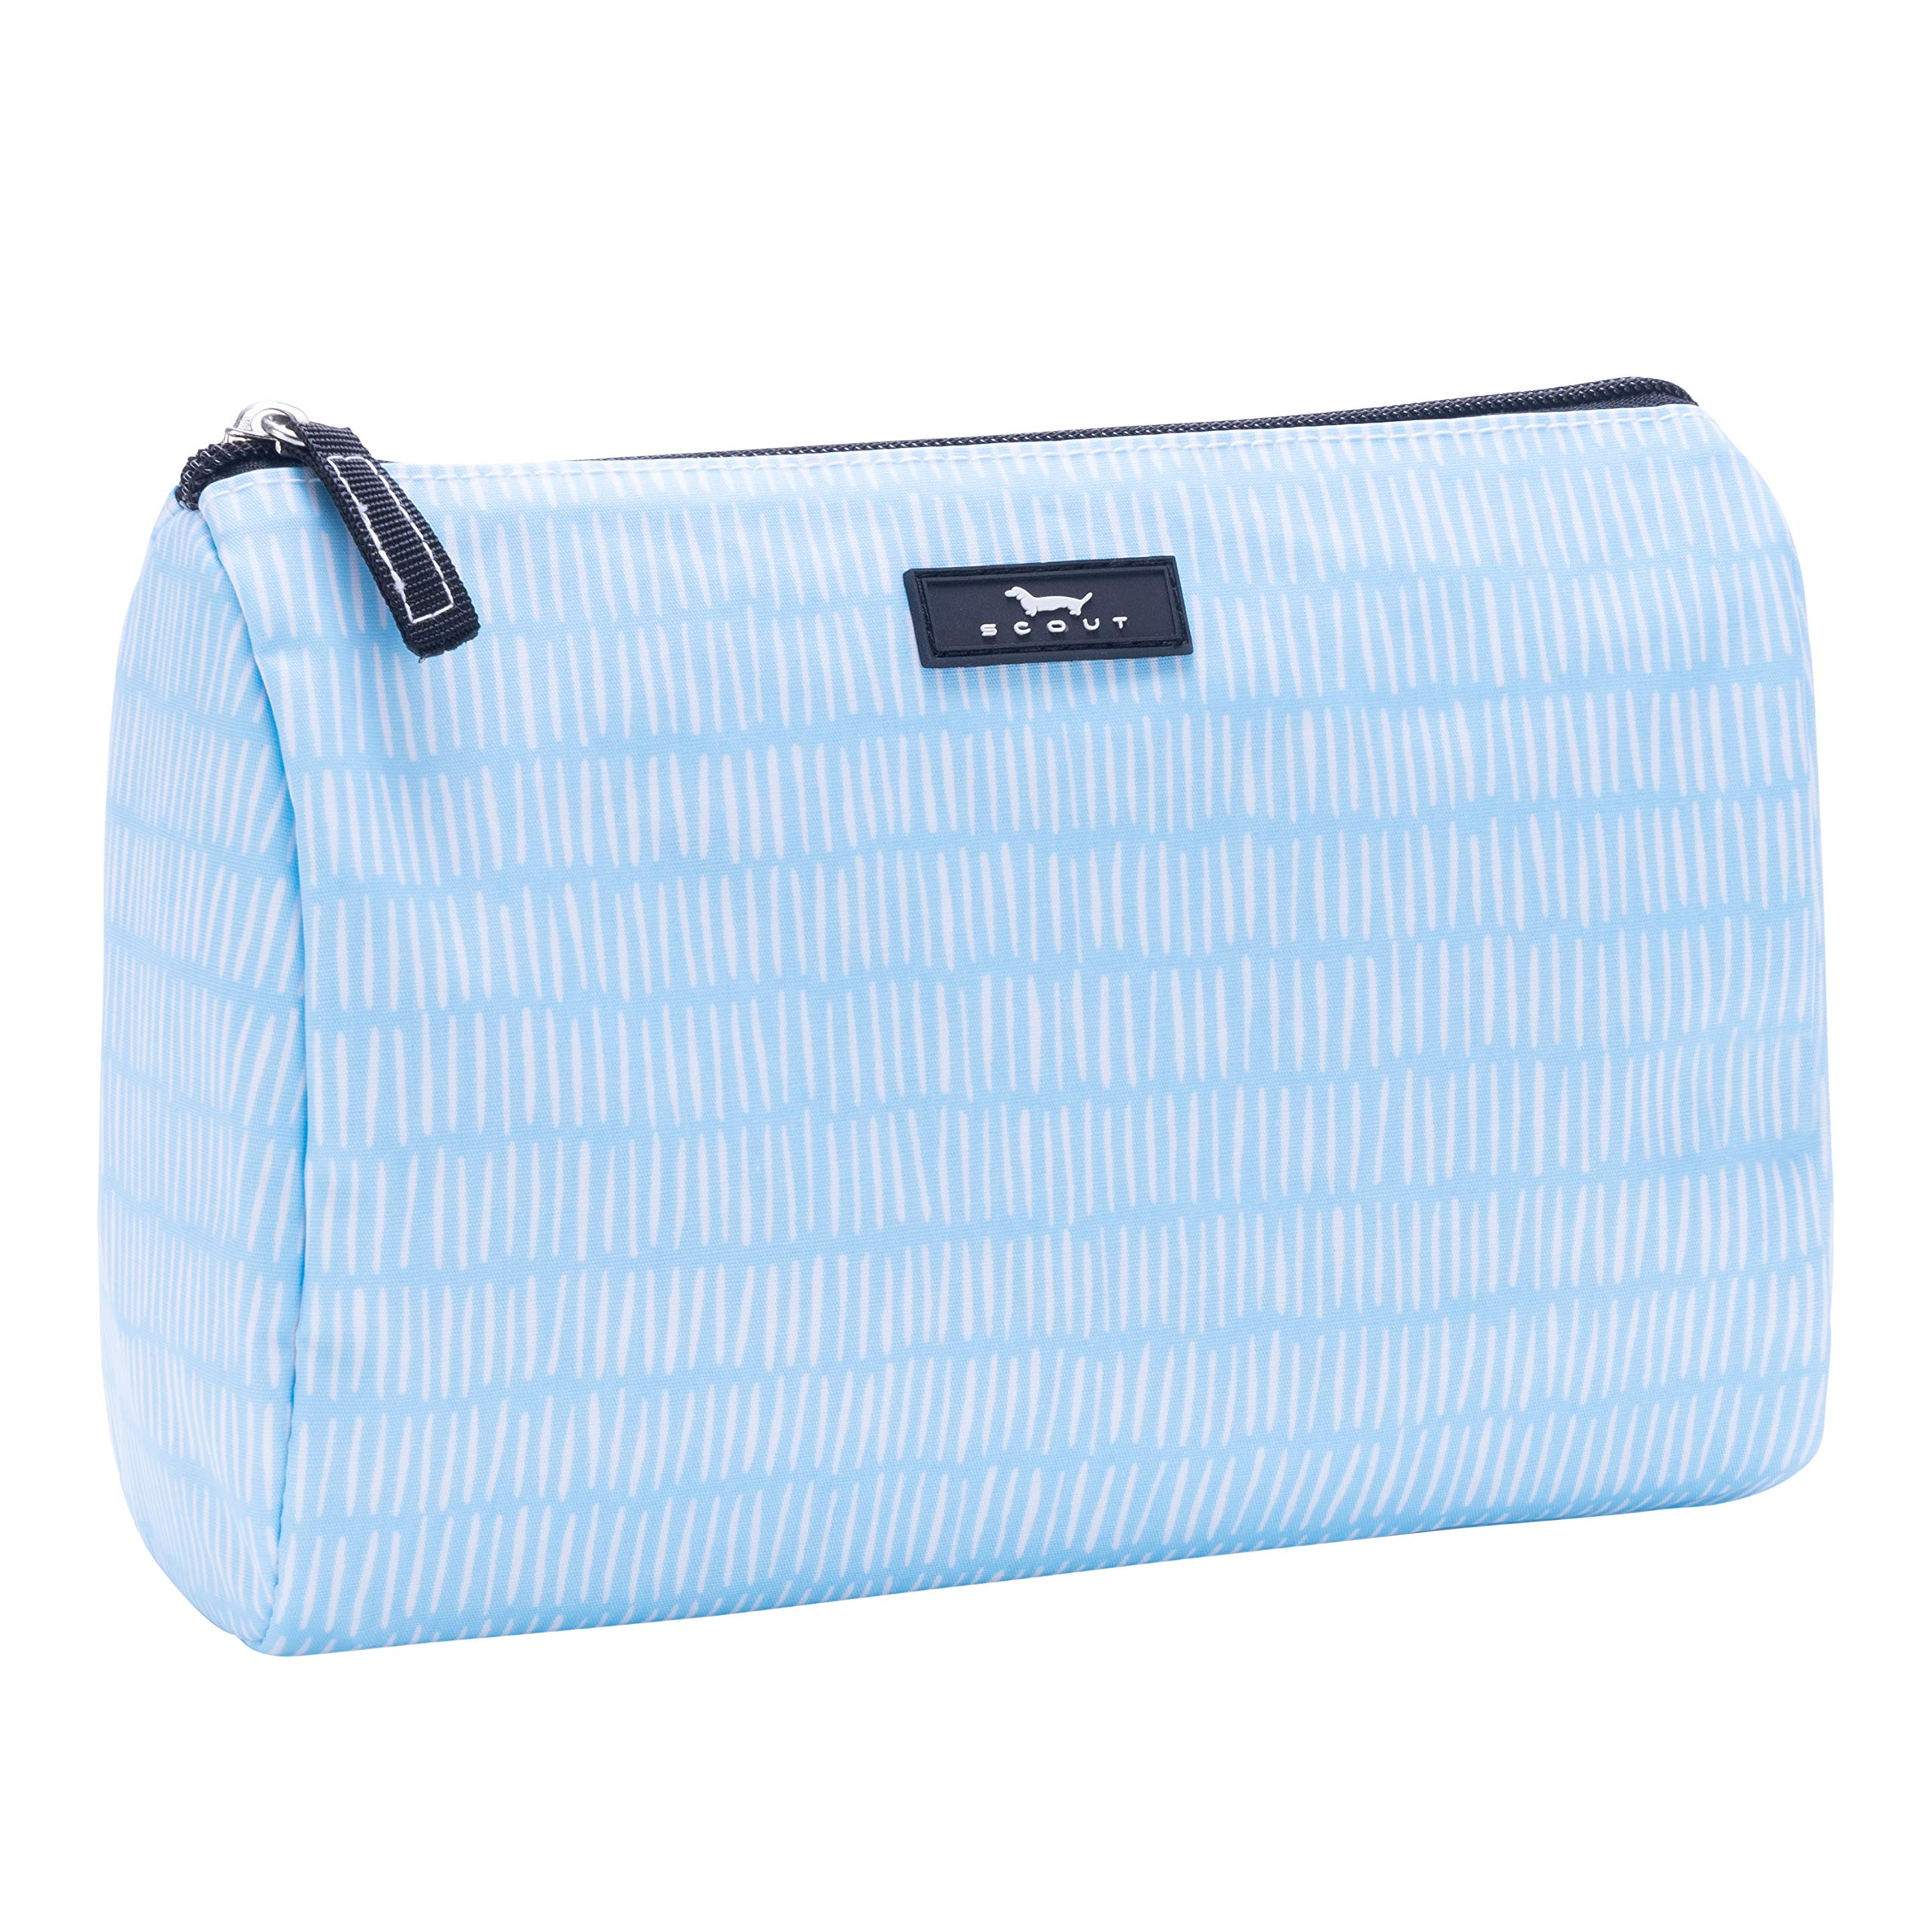 SCOUT Packin' Heat Makeup & Cosmetic, Accessory or Toiletry Bag, Interior Pocket, Water Resistant, Zips Closed, Tally Girl